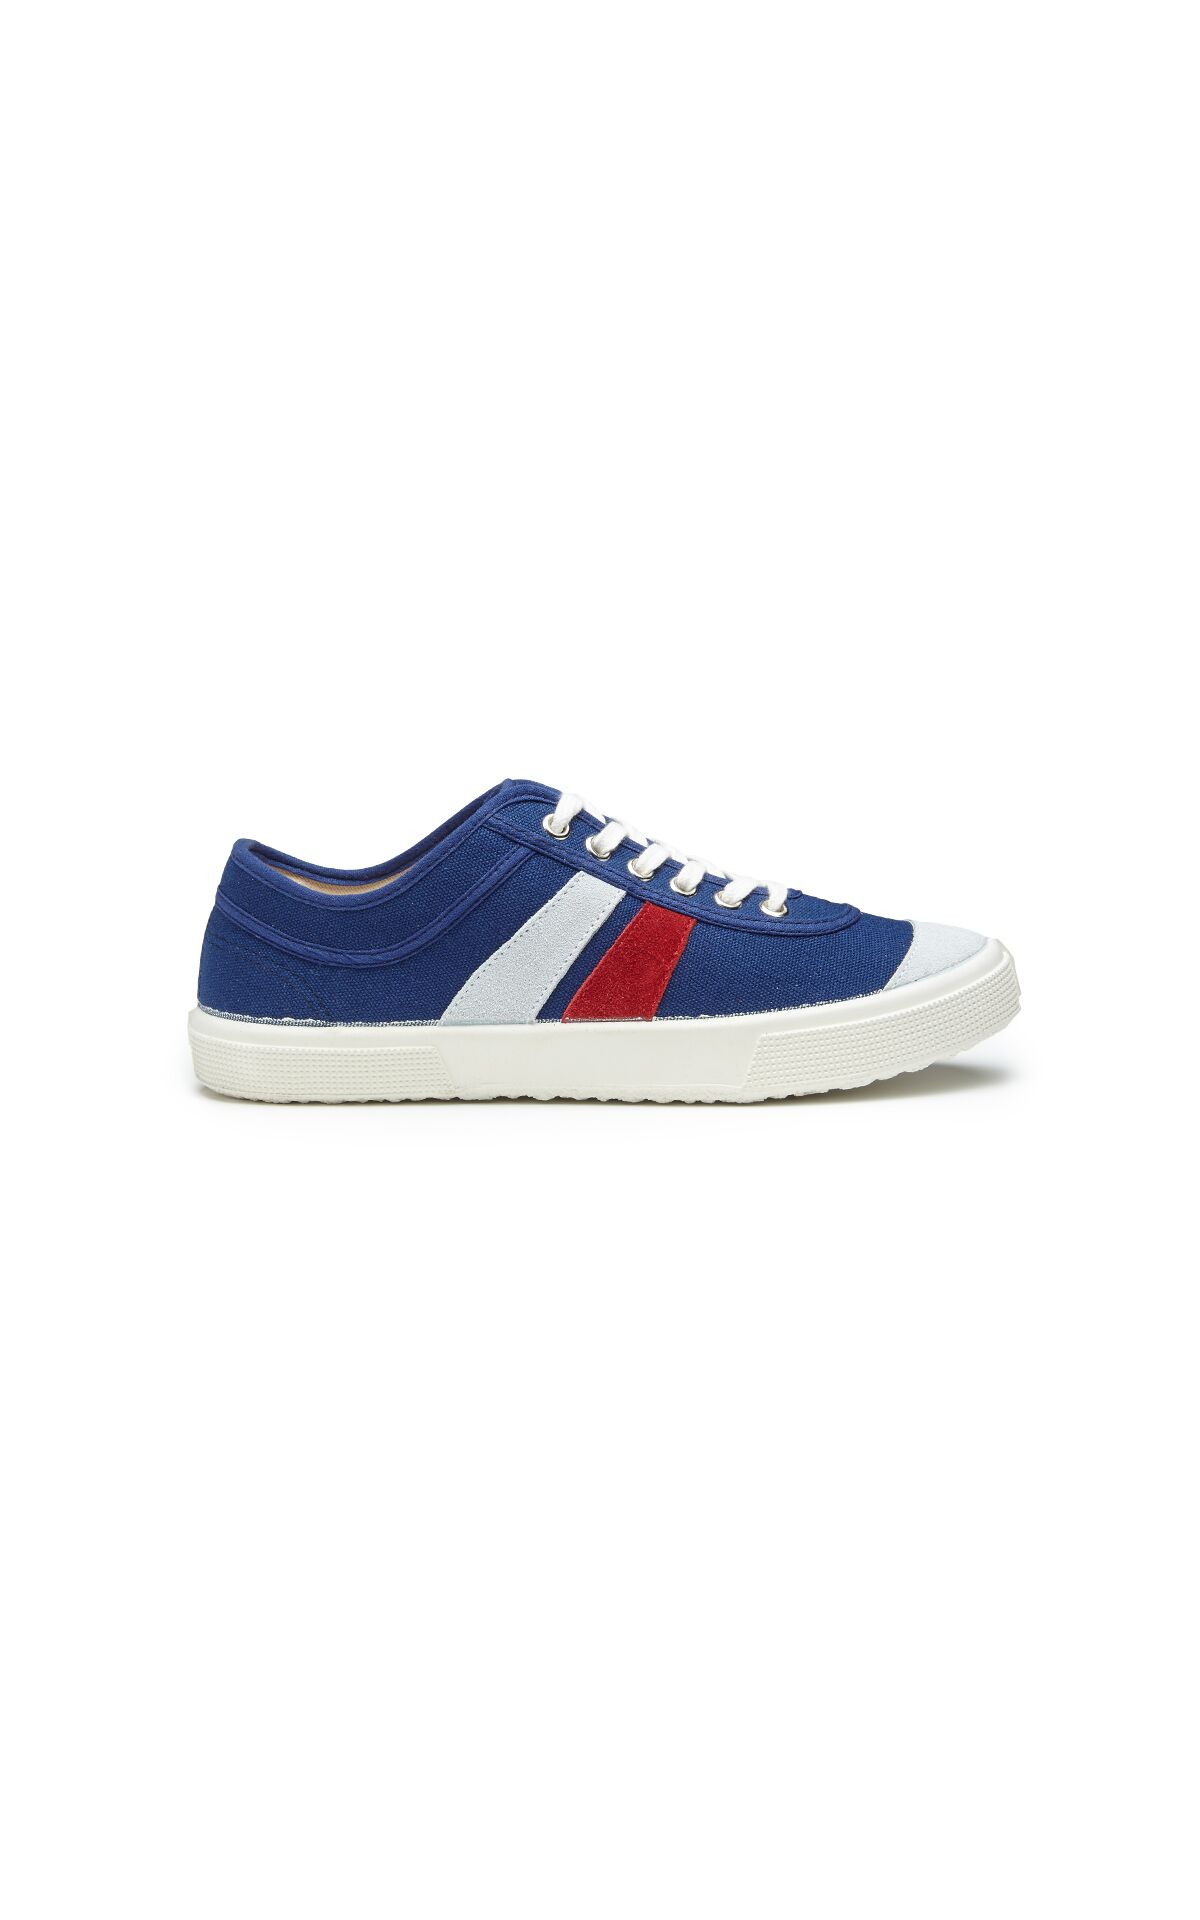 Blue striped sneakers man El Ganso